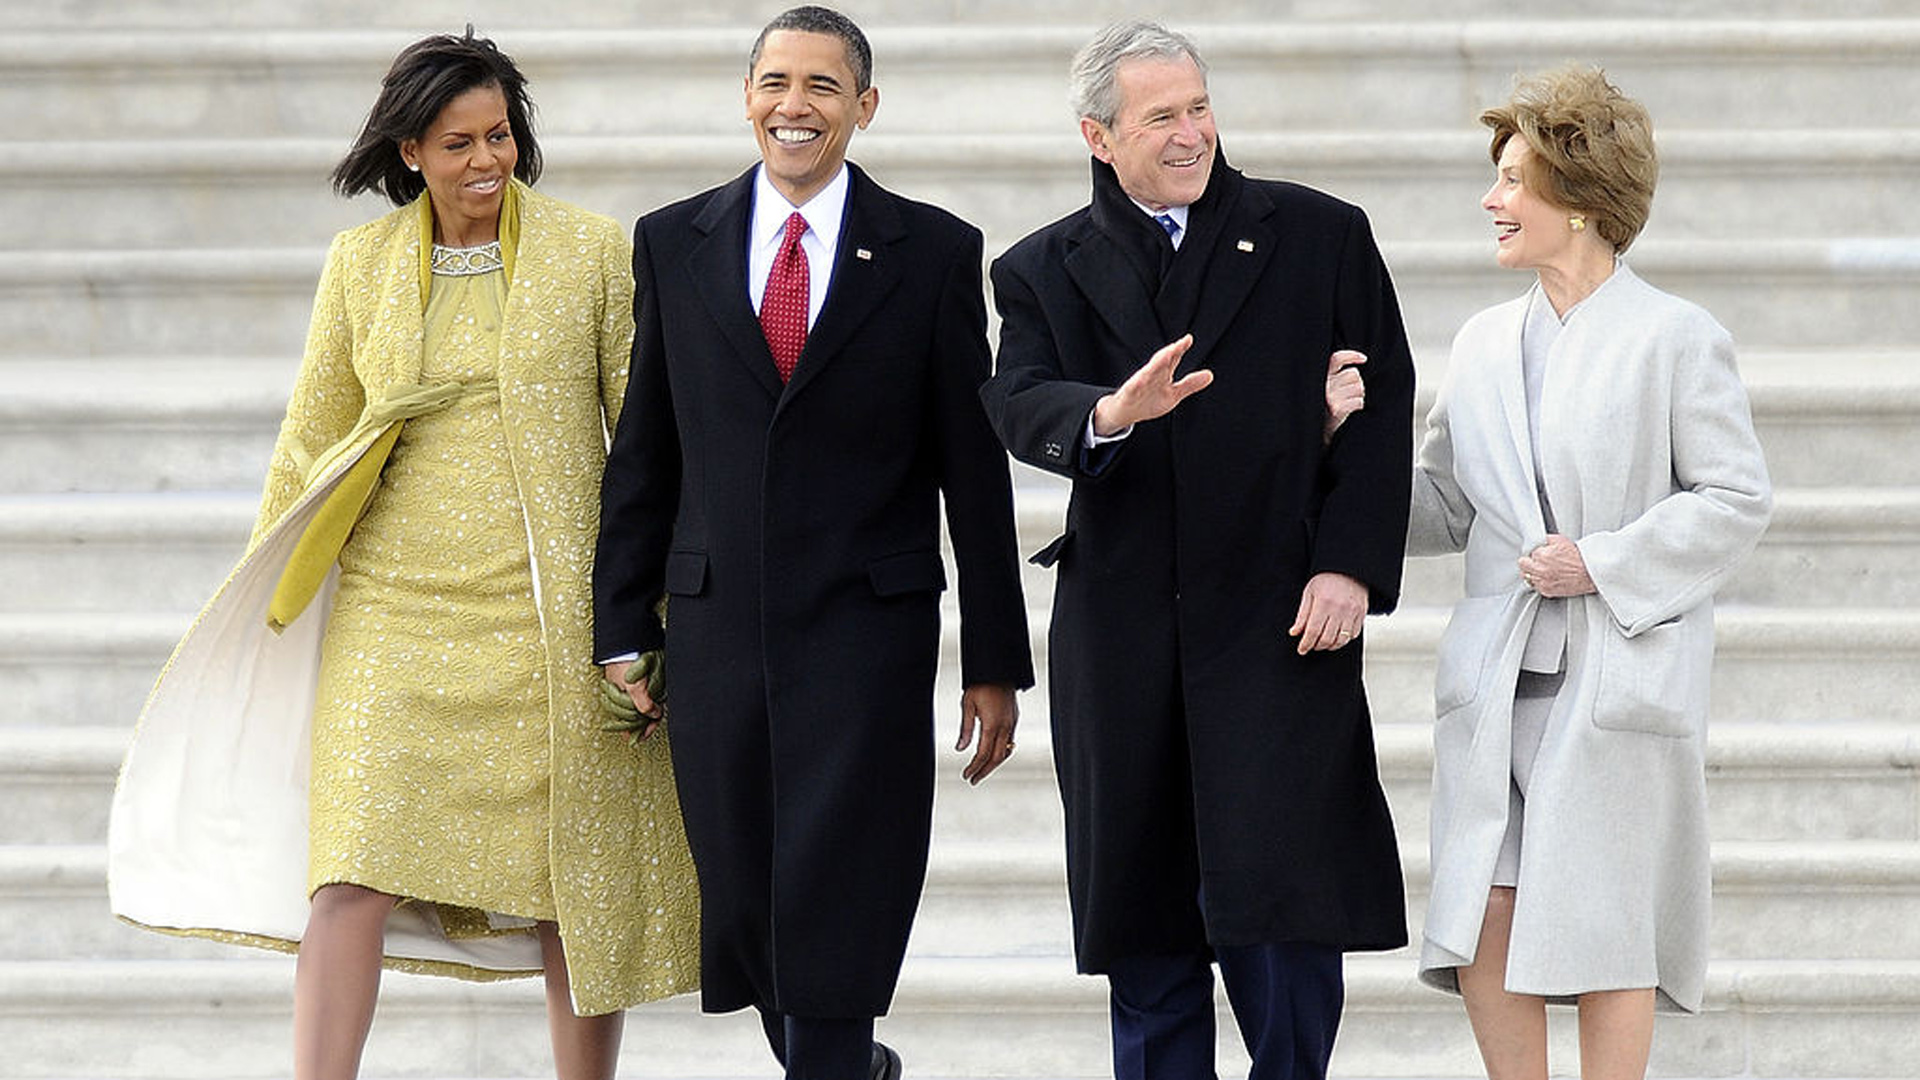 President and First Lady Bush leave the Capitol